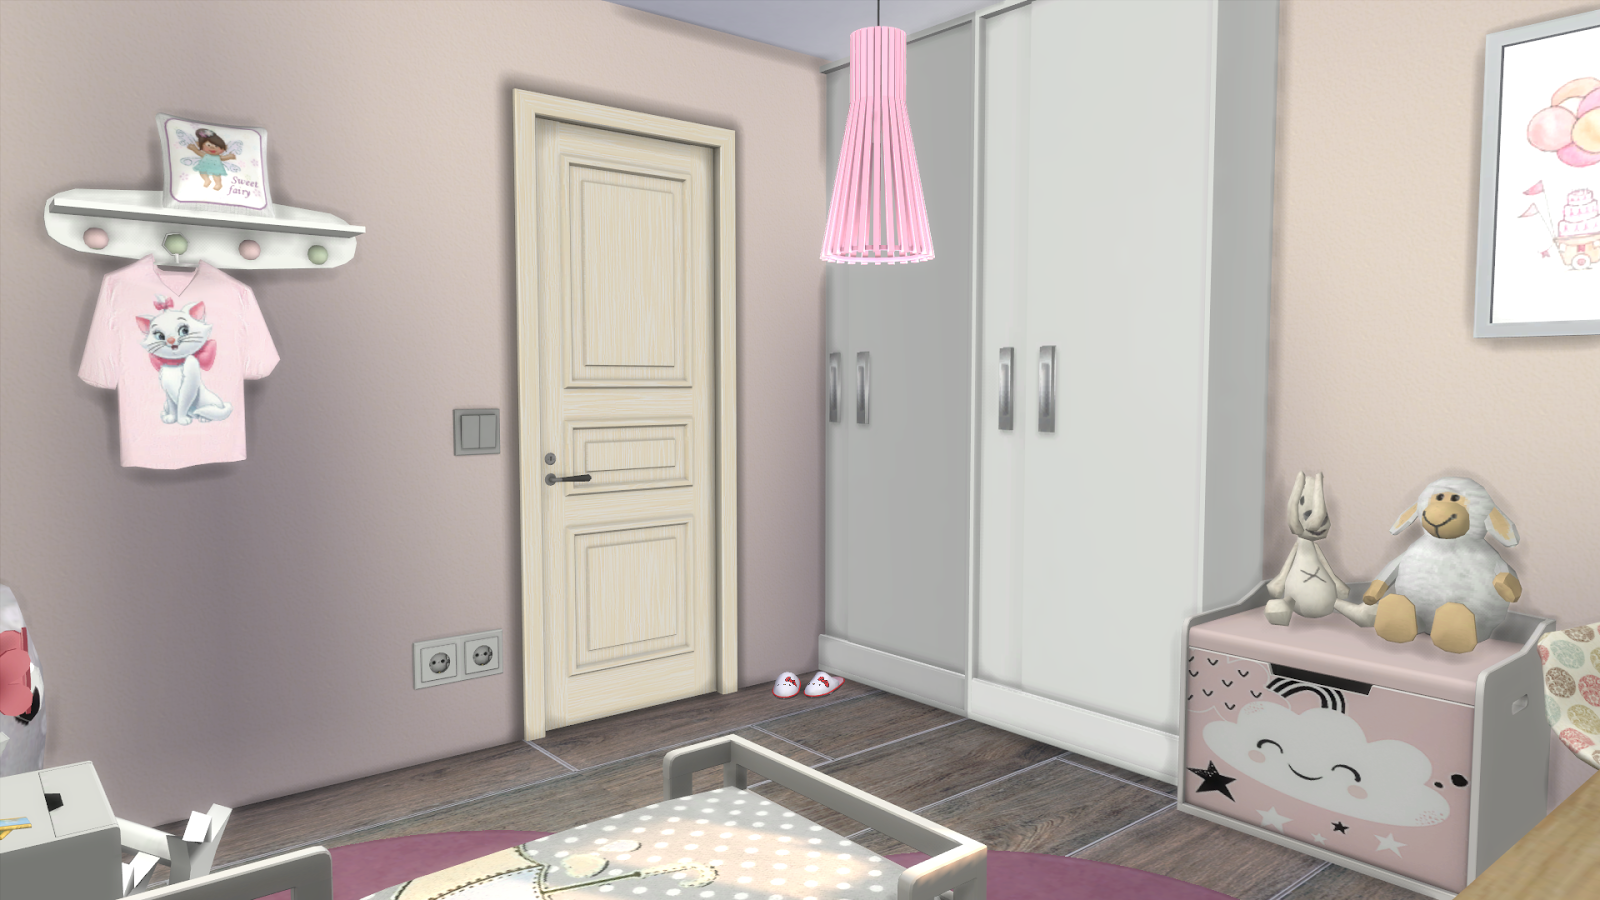 Sims 4 toddler bedroom girl download cc links dinha for 4 bedroom